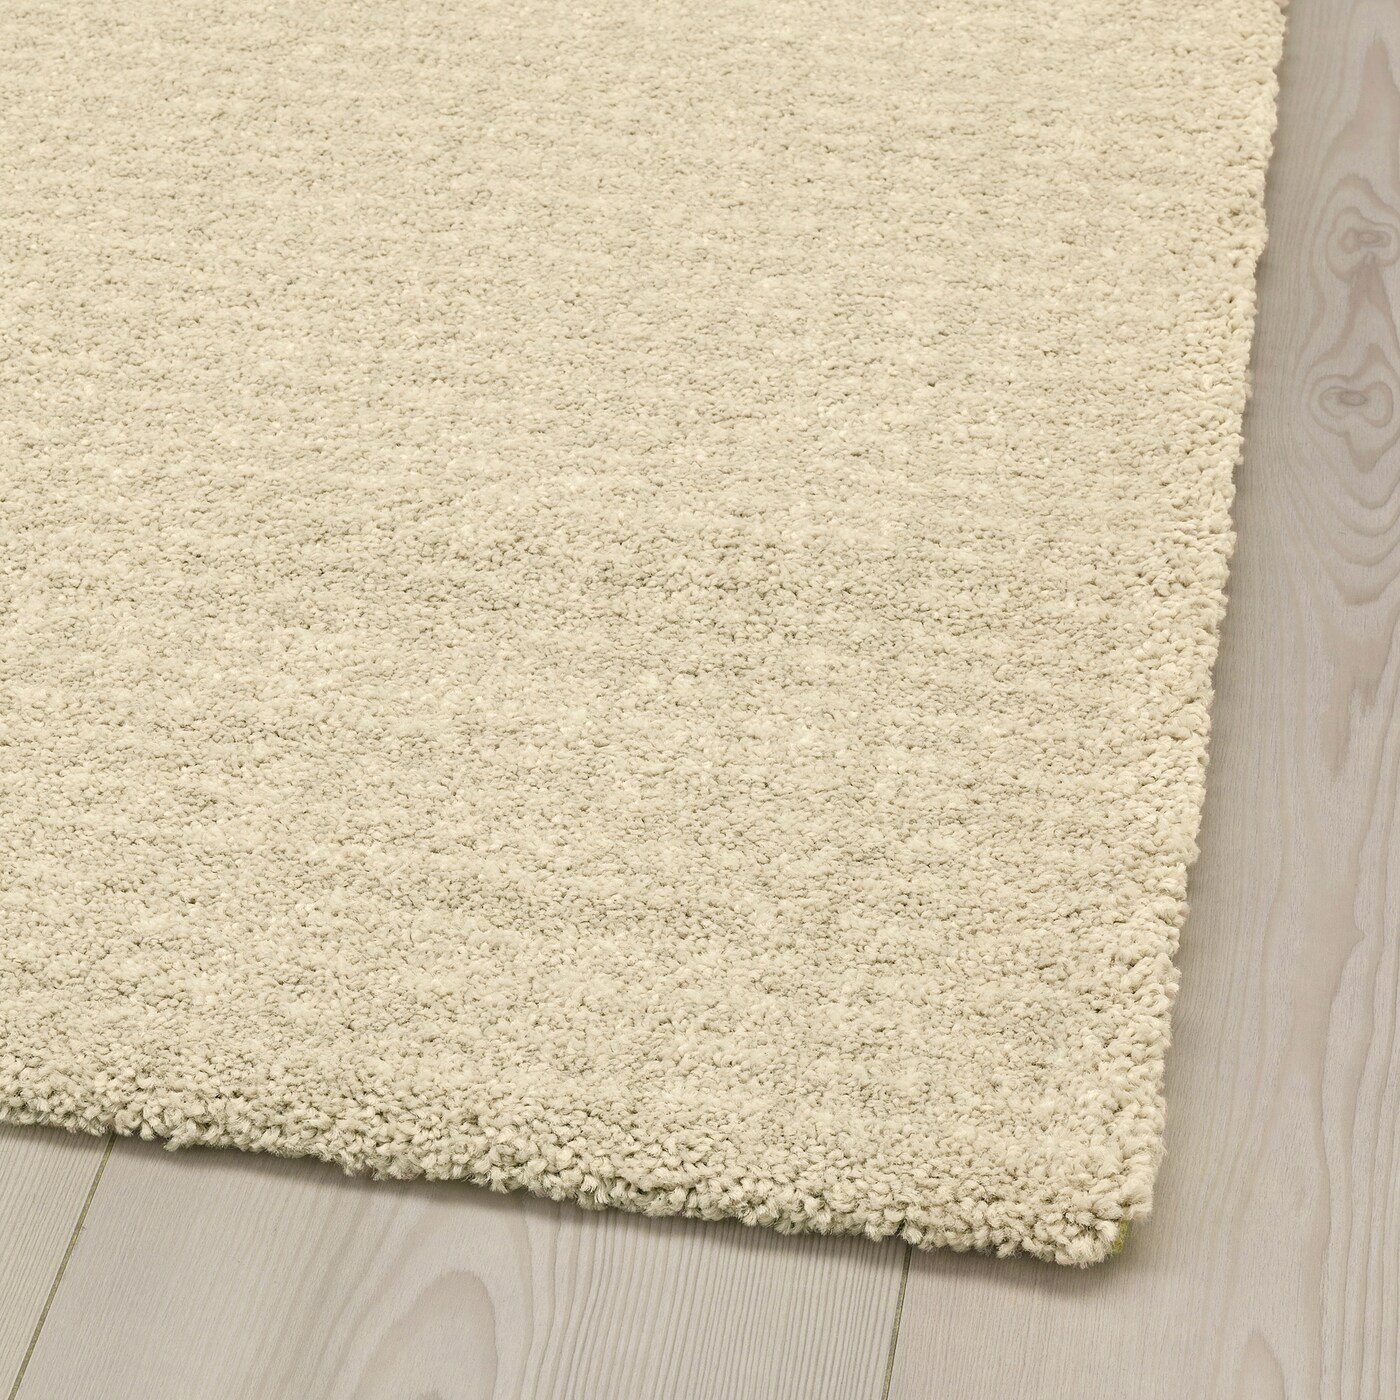 Ikea Langsted Area Rug in Beige